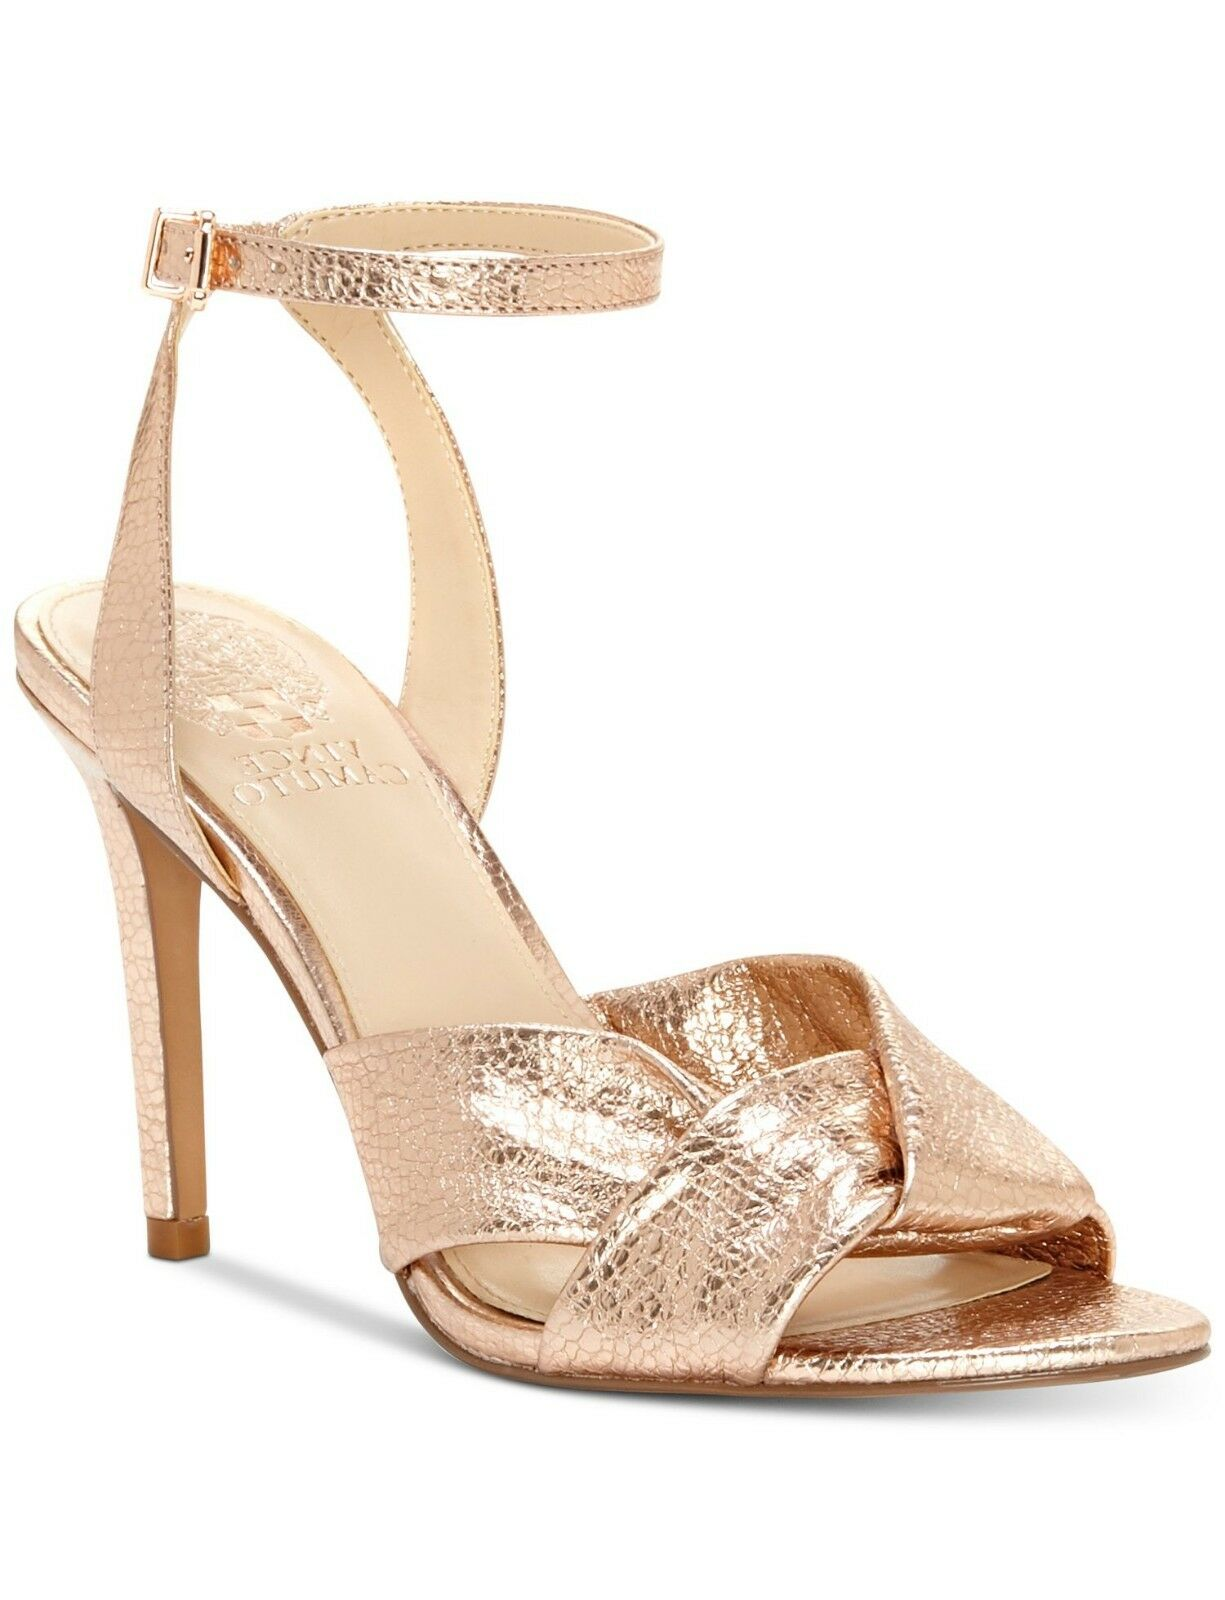 Vince Camuto Jenika Beaming bluesh Knotted Ankle Strap Sandals Multisizes